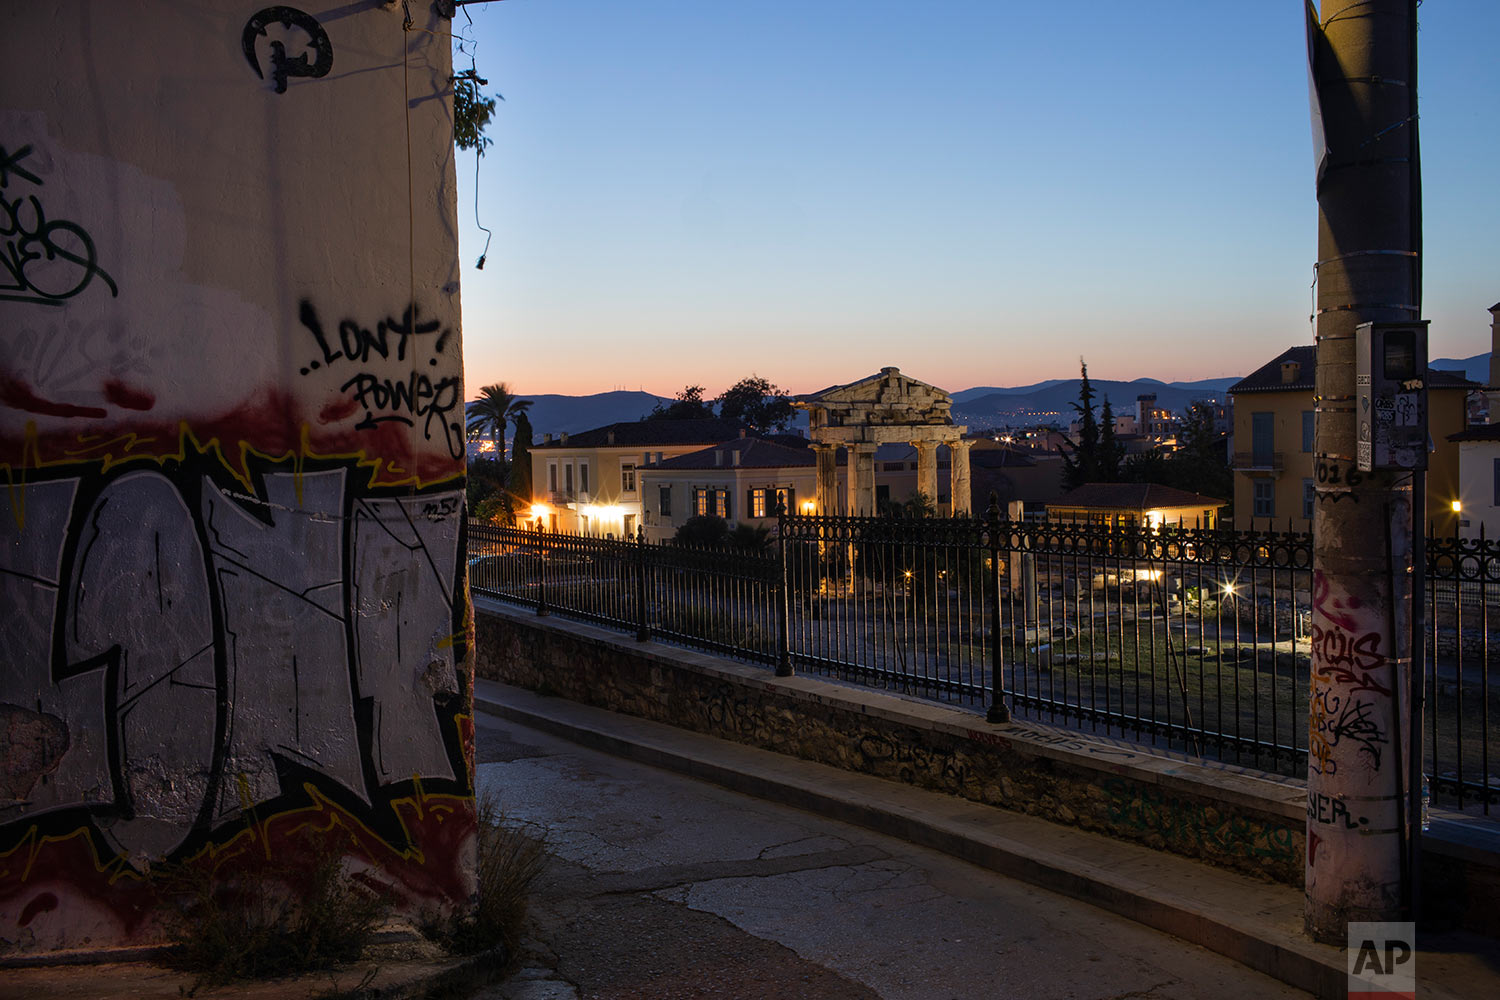 The facade of a building and an electricity pole are covered with graffiti in front the Gate of the ancient Roman agora in Plaka district of Athens, July 7, 2019. (AP Photo/Petros Giannakouris)